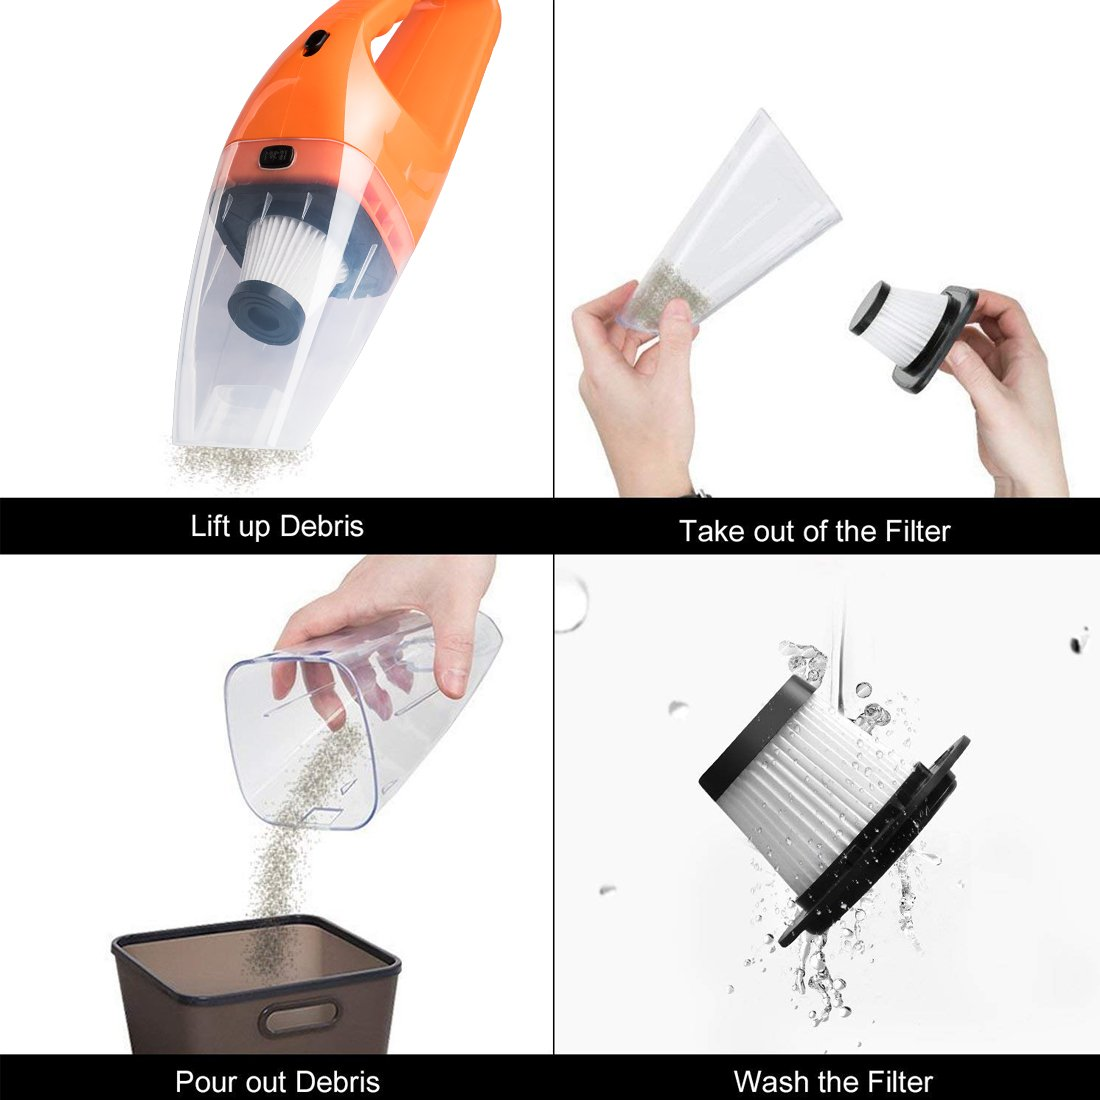 Car Vacuum Cleaner DC 12V Wet Dry Auto Dustbuster Portable Handheld Auto Vacuum Cleaner for Car 4000Pa Suction 120W Car Hoover with HEAP Filter & 5 Meters/16.4 FT Power Cord(1 Yr Warranty) Orange by candyfouse (Image #7)